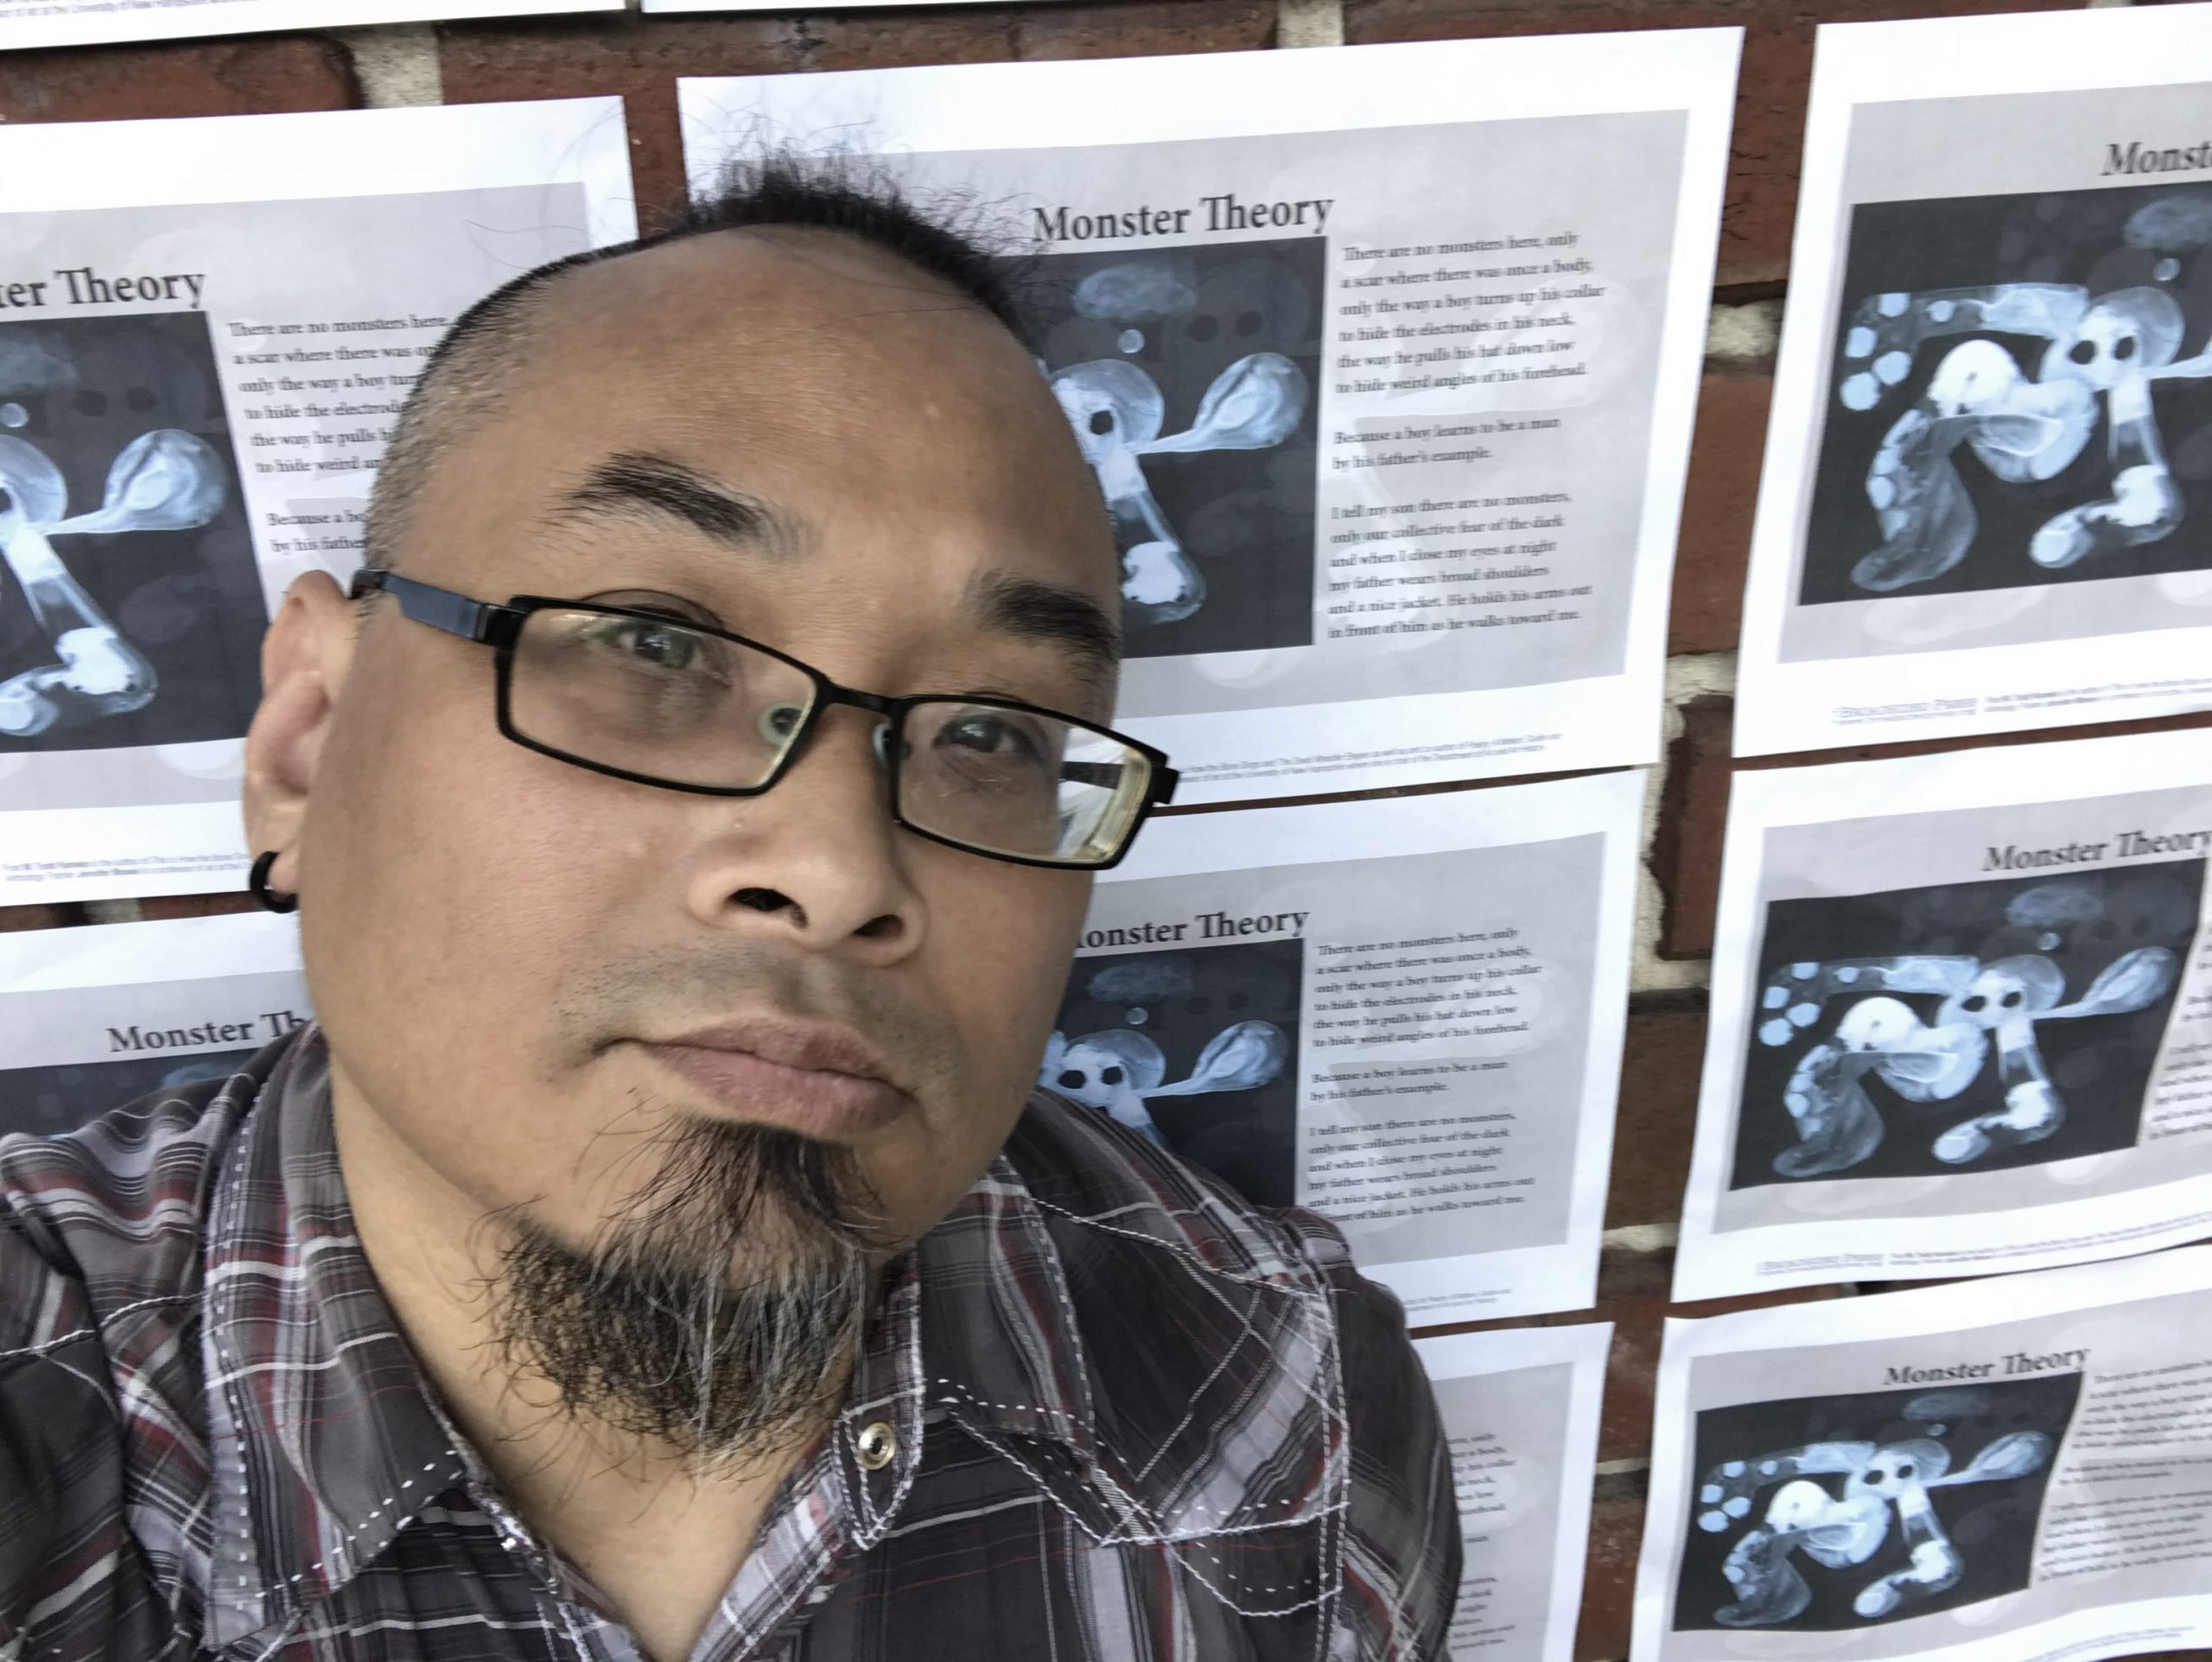 The poet stands in front of more than nine copies of his broadside positioned in a grid.